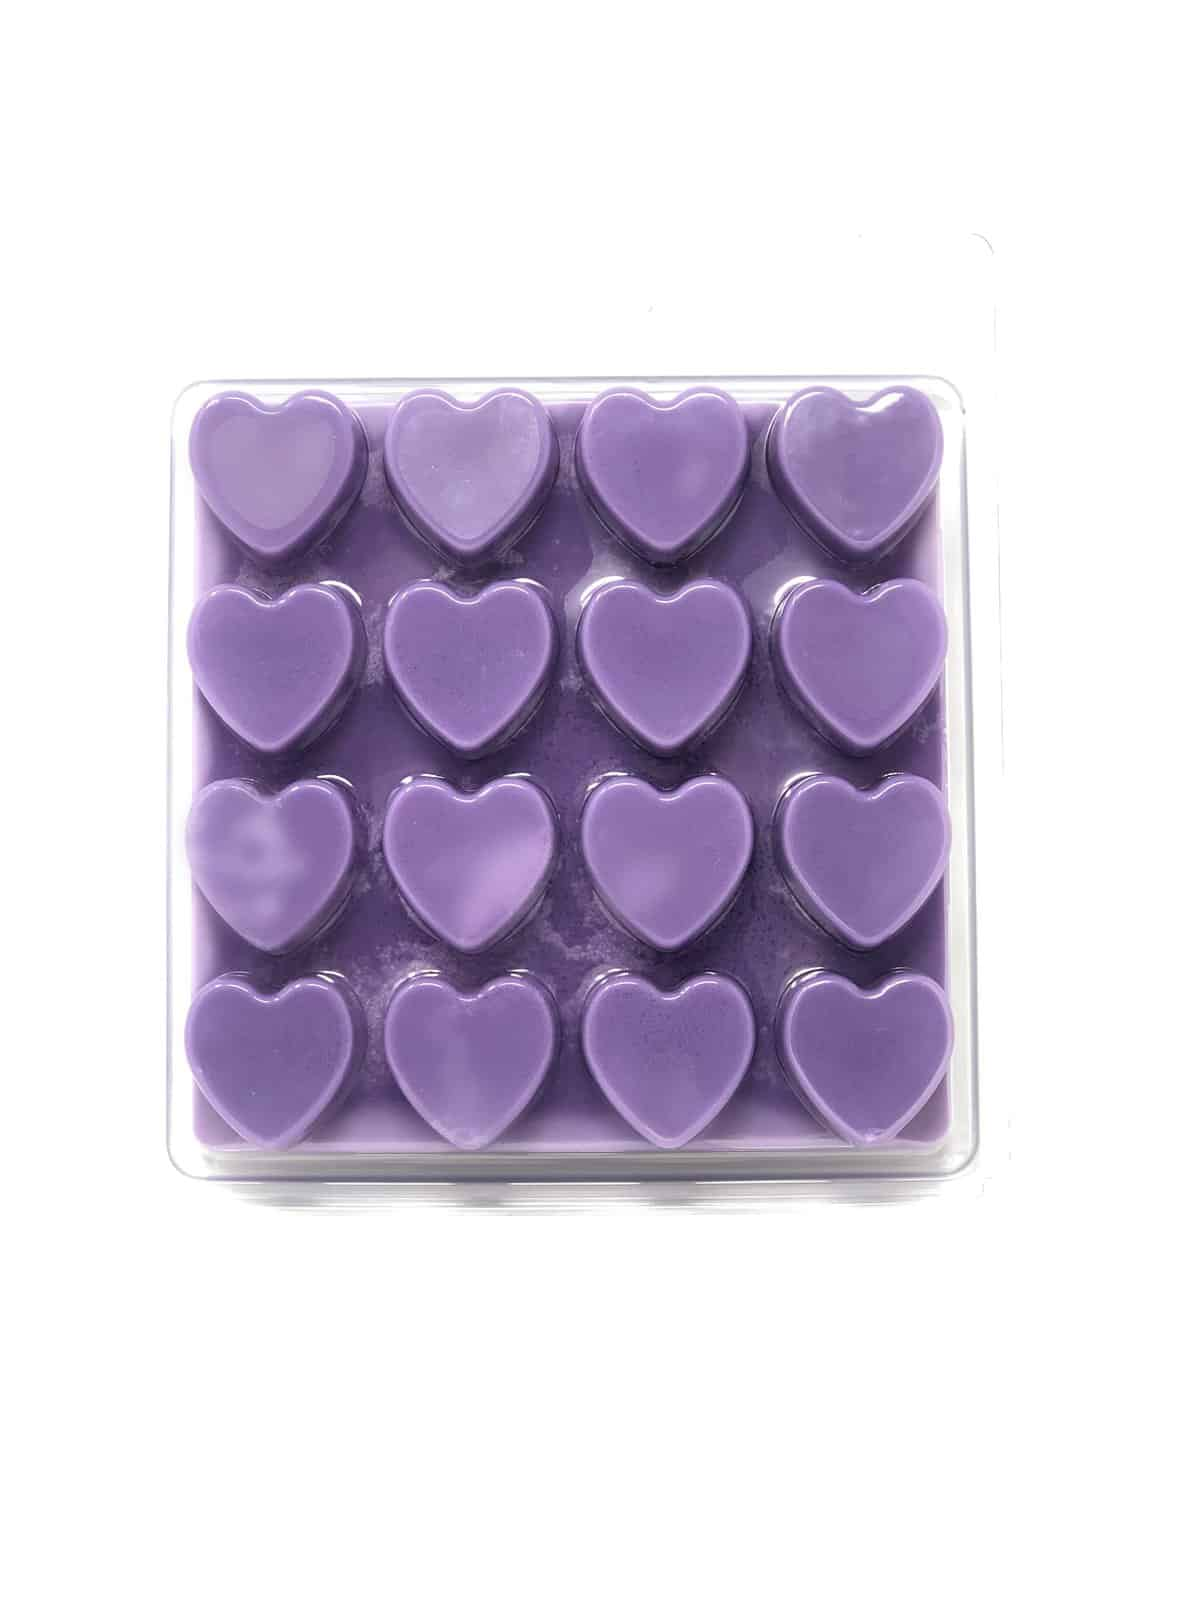 Jumbo 9.5 oz Heart Wax Melts - Luxe Personalization Boutique